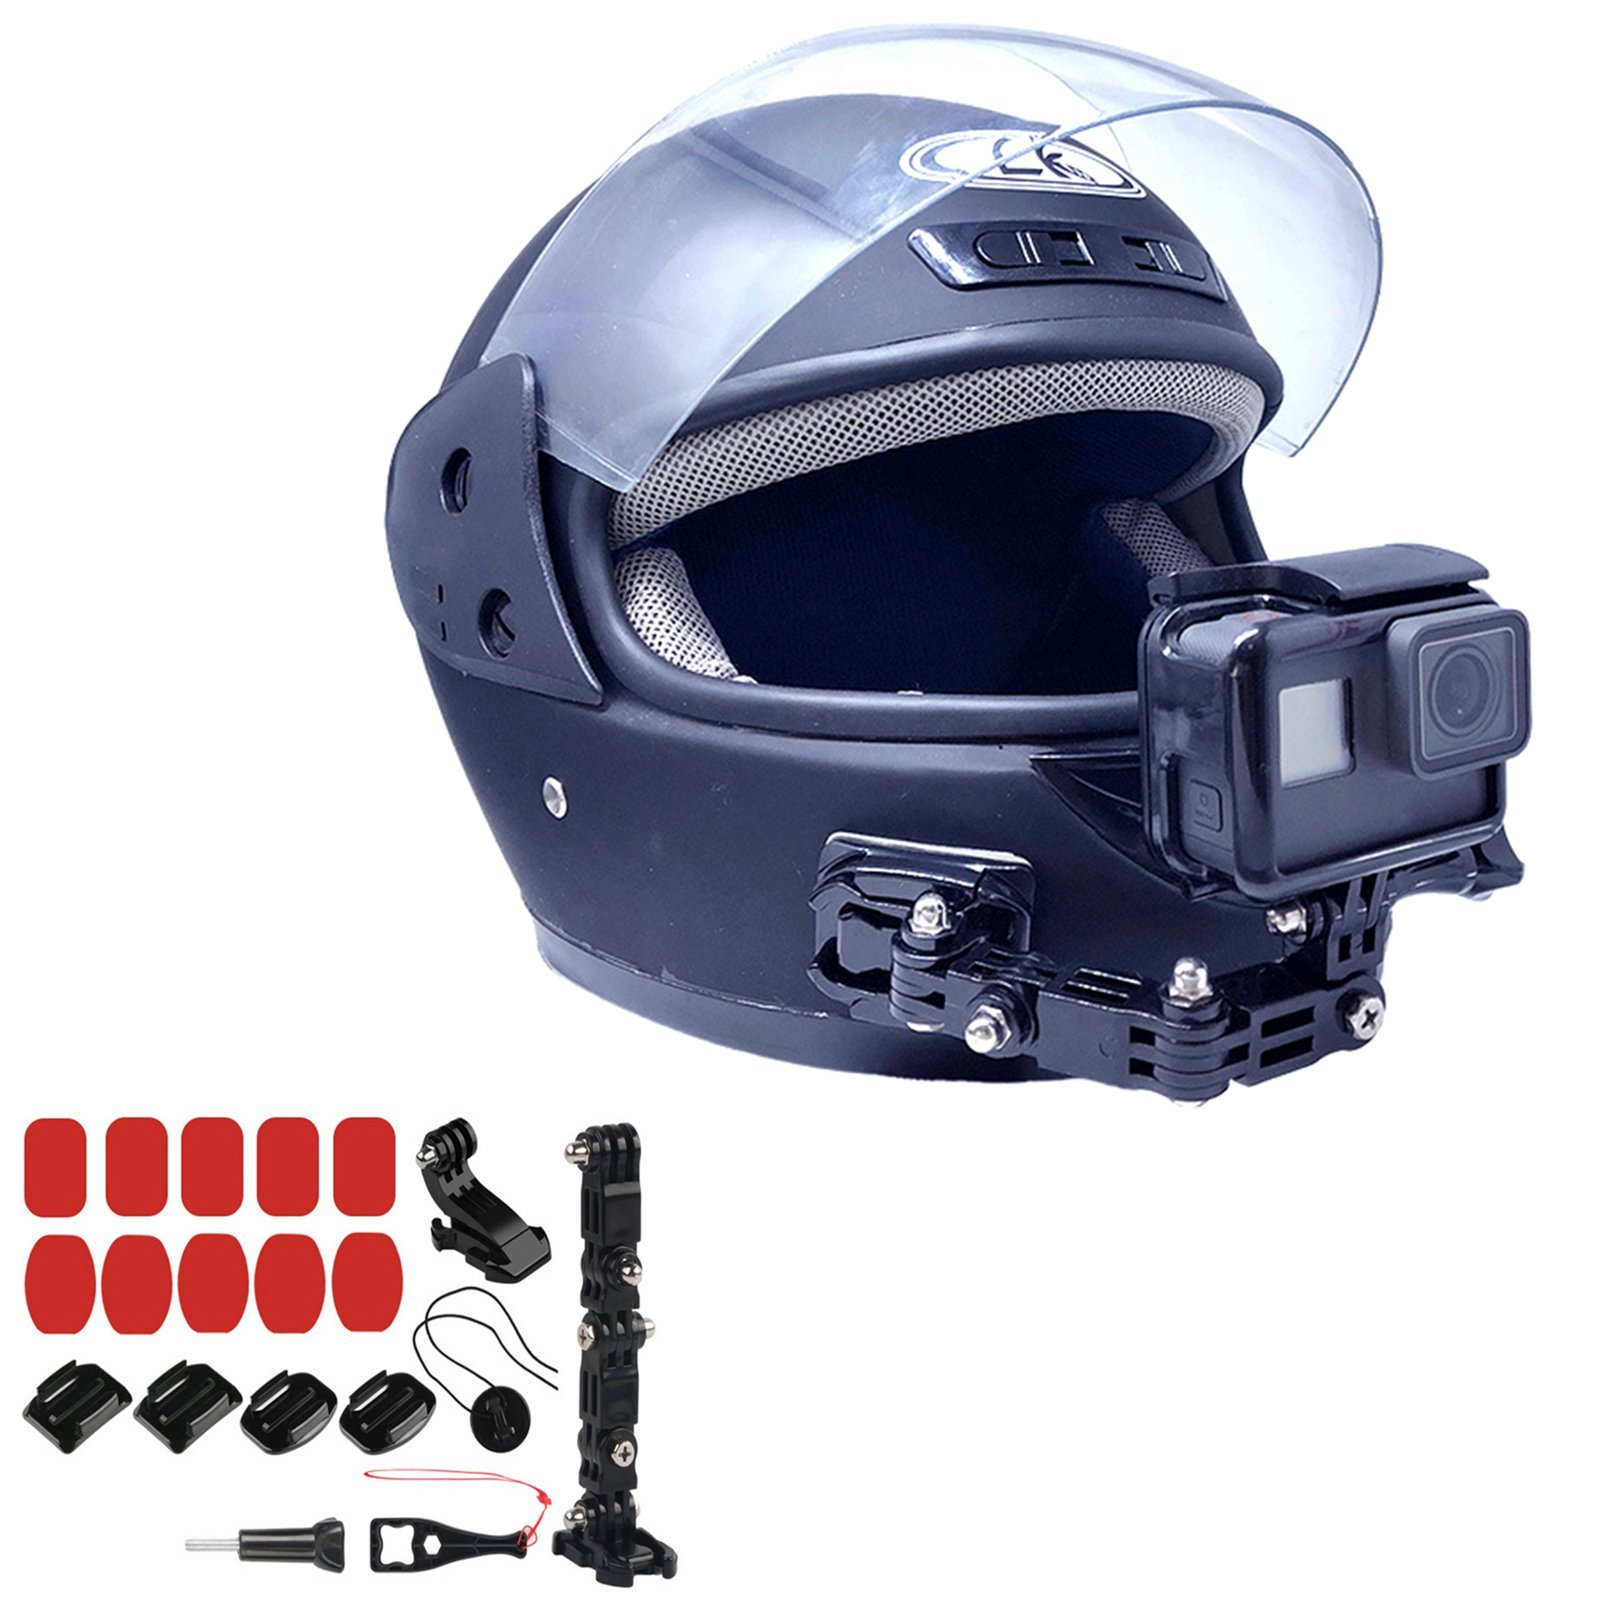 XBERSTAR Adhesive Front Full Face Helmet Chin Jaw Swivel Arm Mount for Gopro Hero 6 5 4 3 Xiaomi Yi Action Cameras